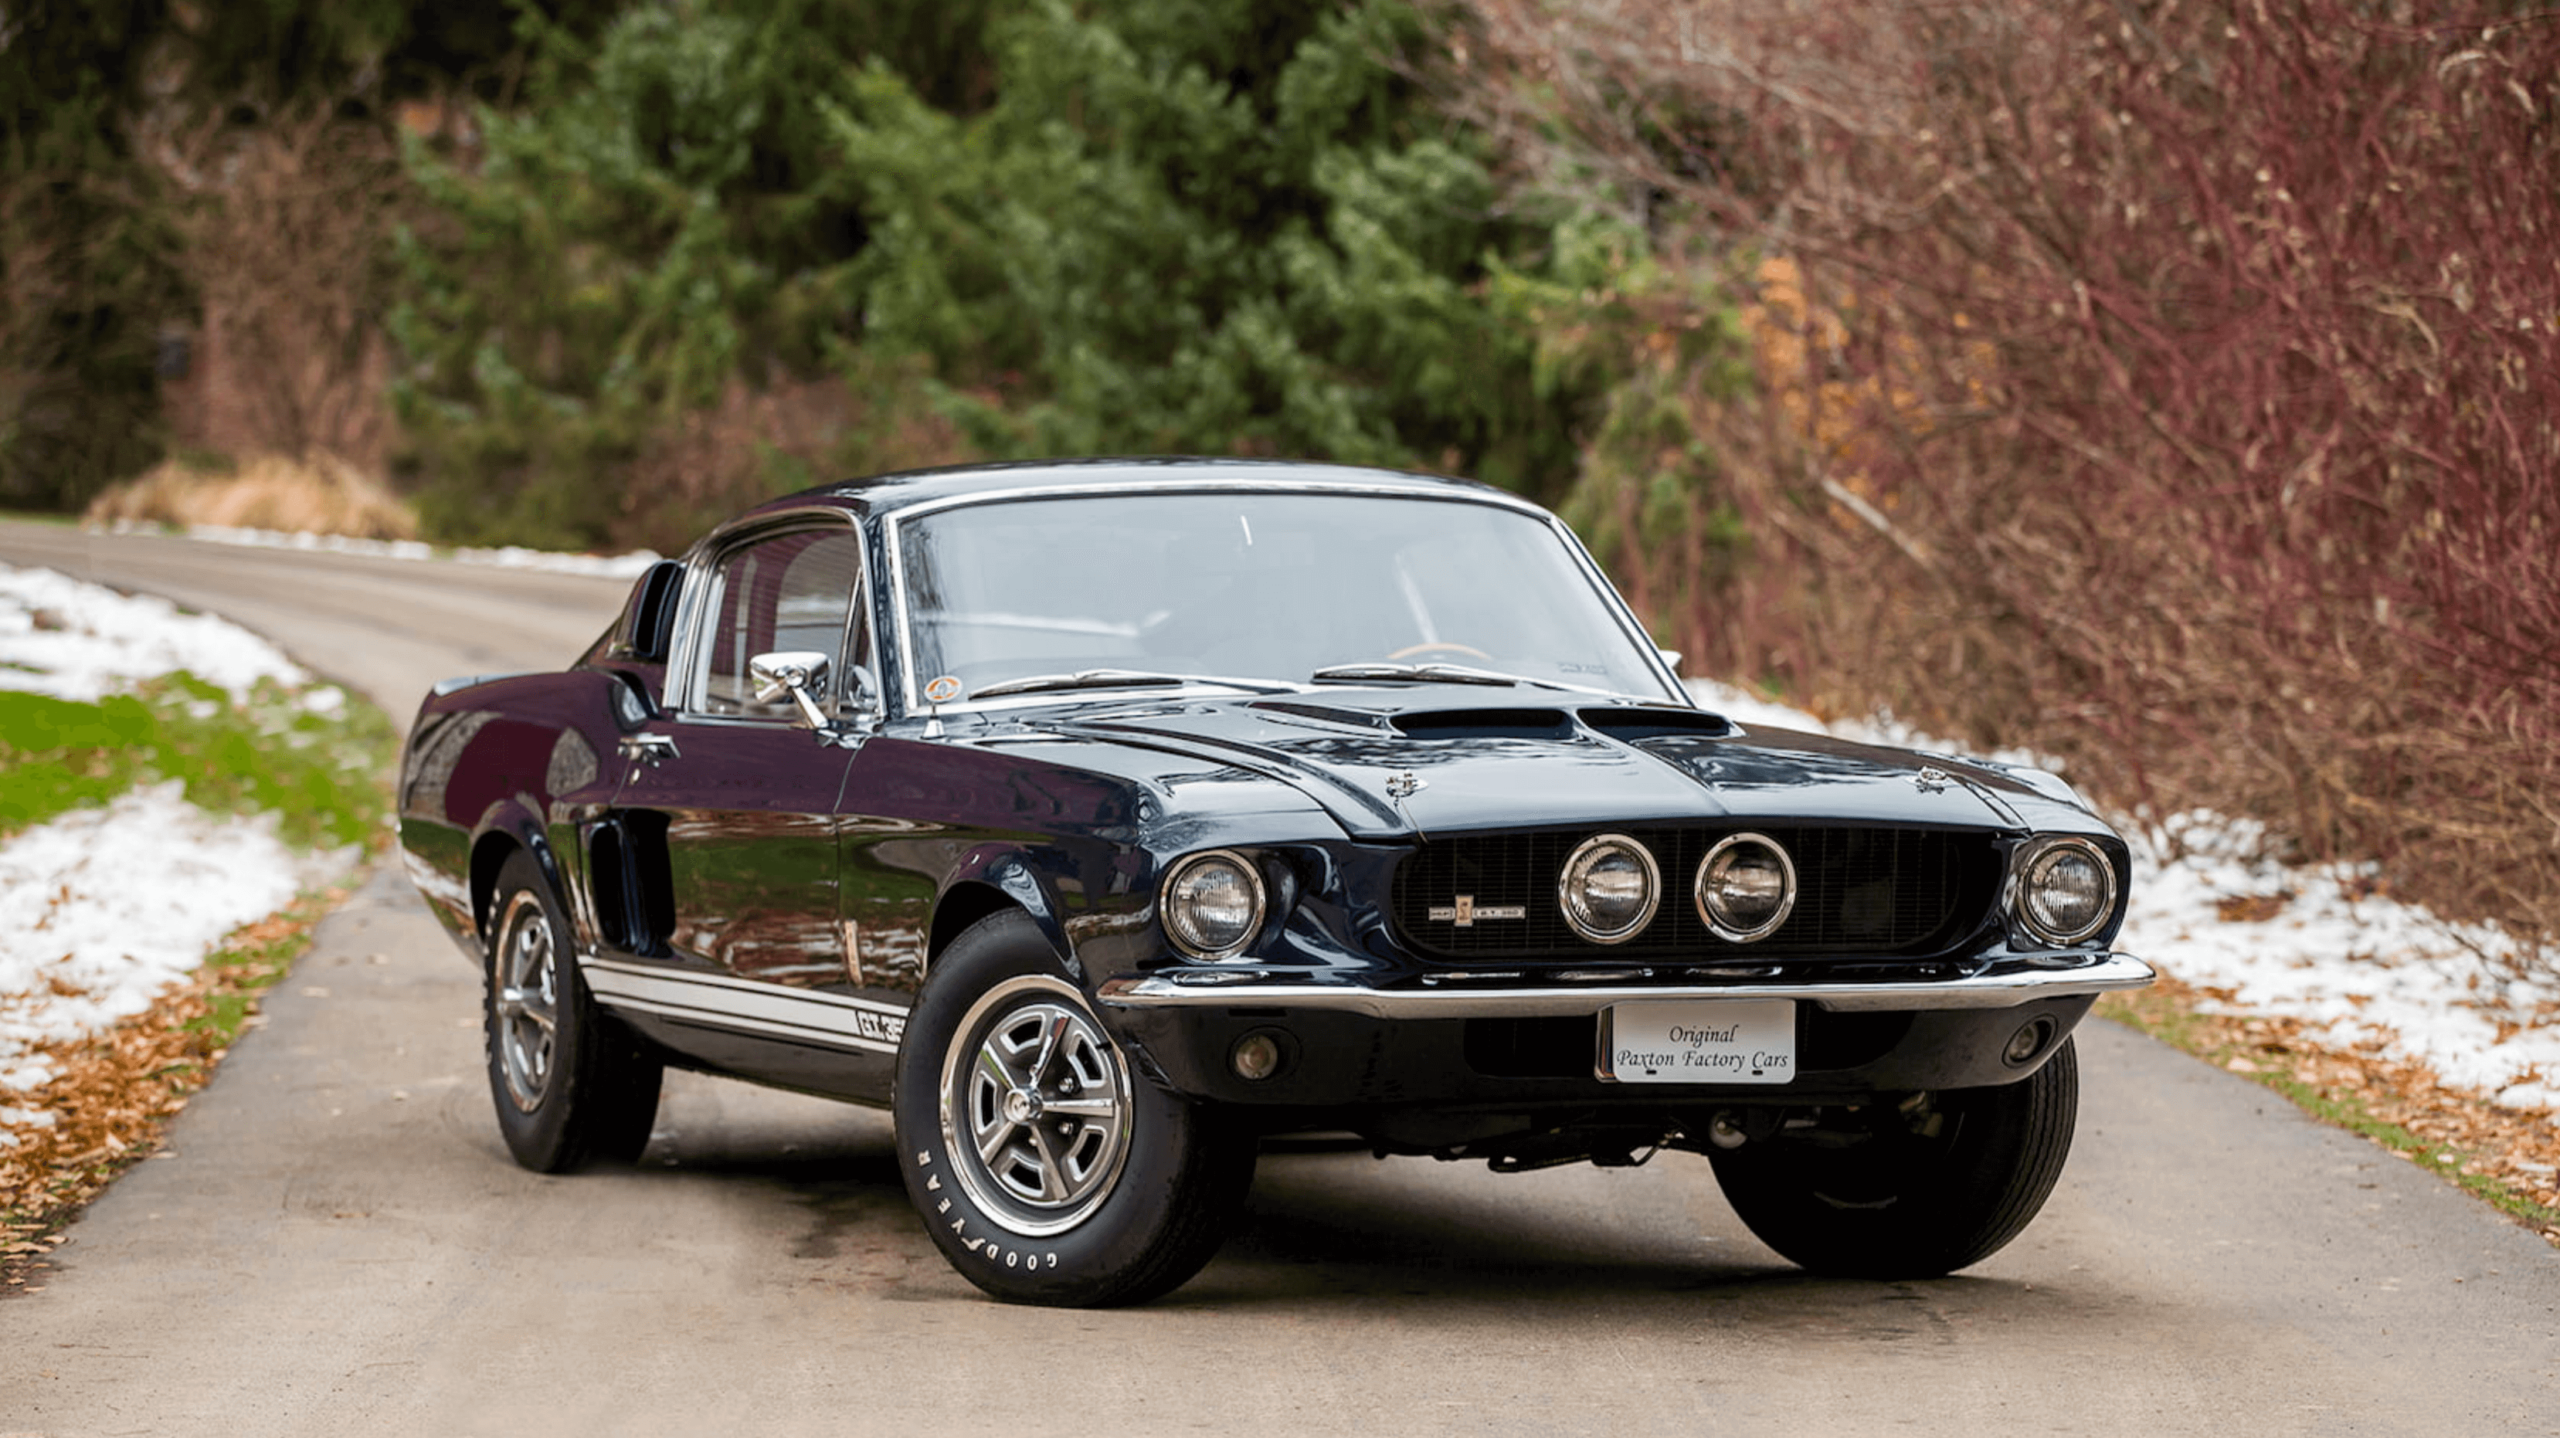 Mustang sold at Mecum Shelby GT350